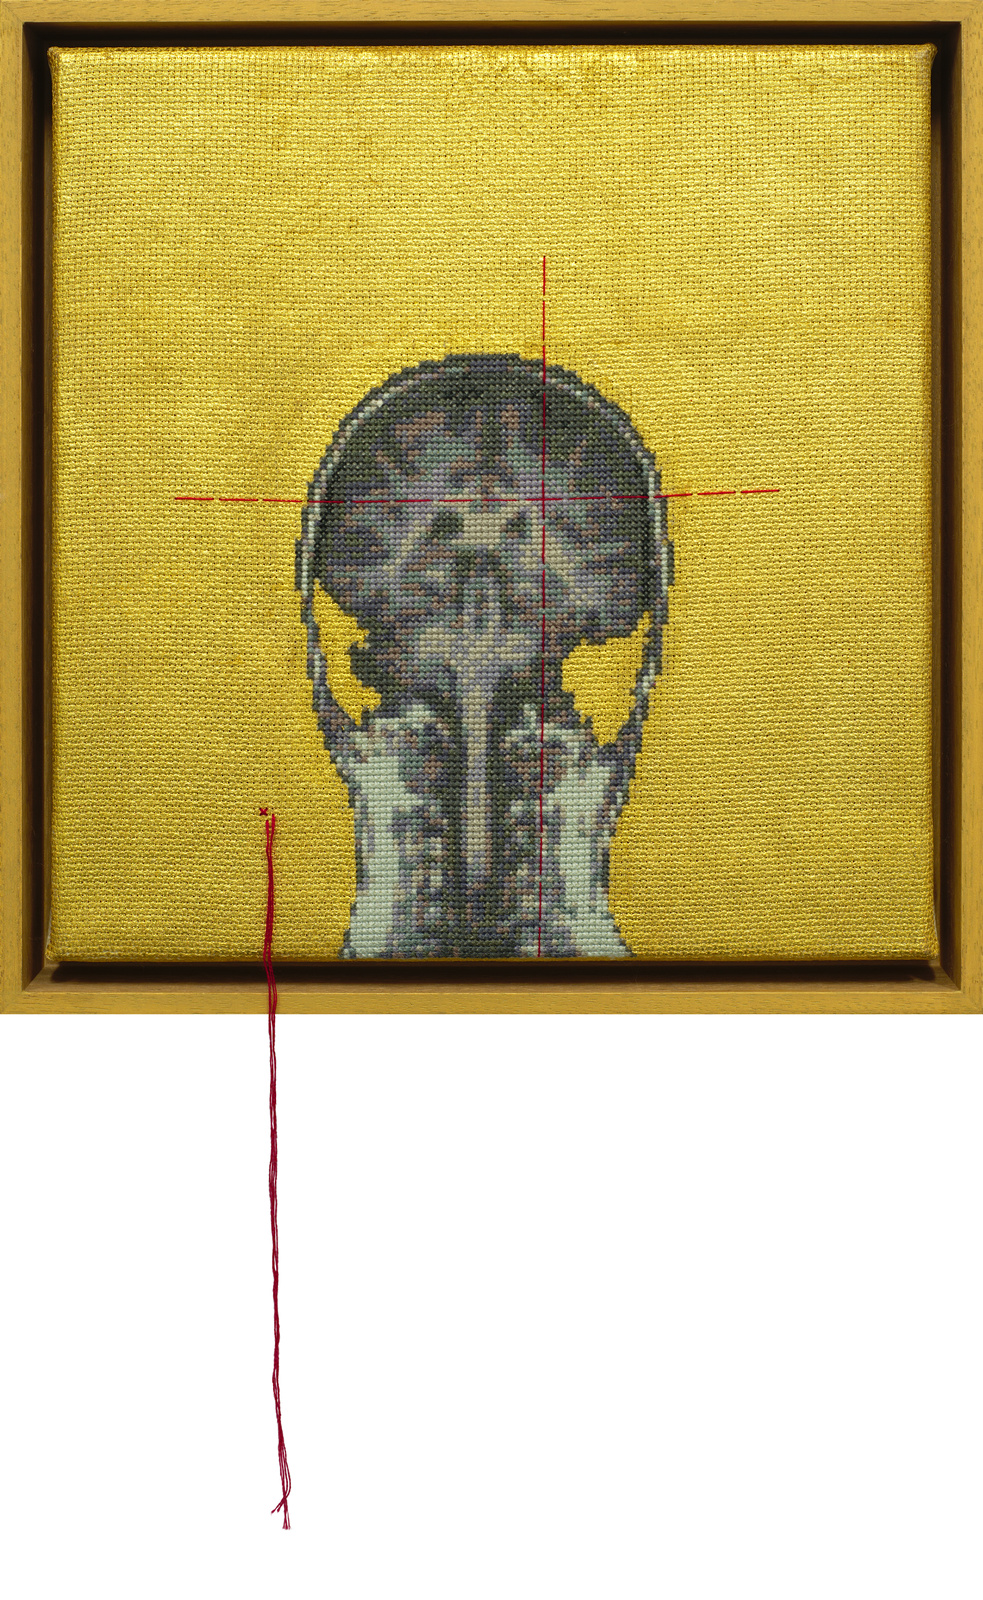 Lada Dedic Self Portrait; Artist's Brain Stranded cotton, 23 karat gold on aida cloth, 2017 300 x 290 mm  Stitching time: 43 hours 55 minutes    photo Bob Newman